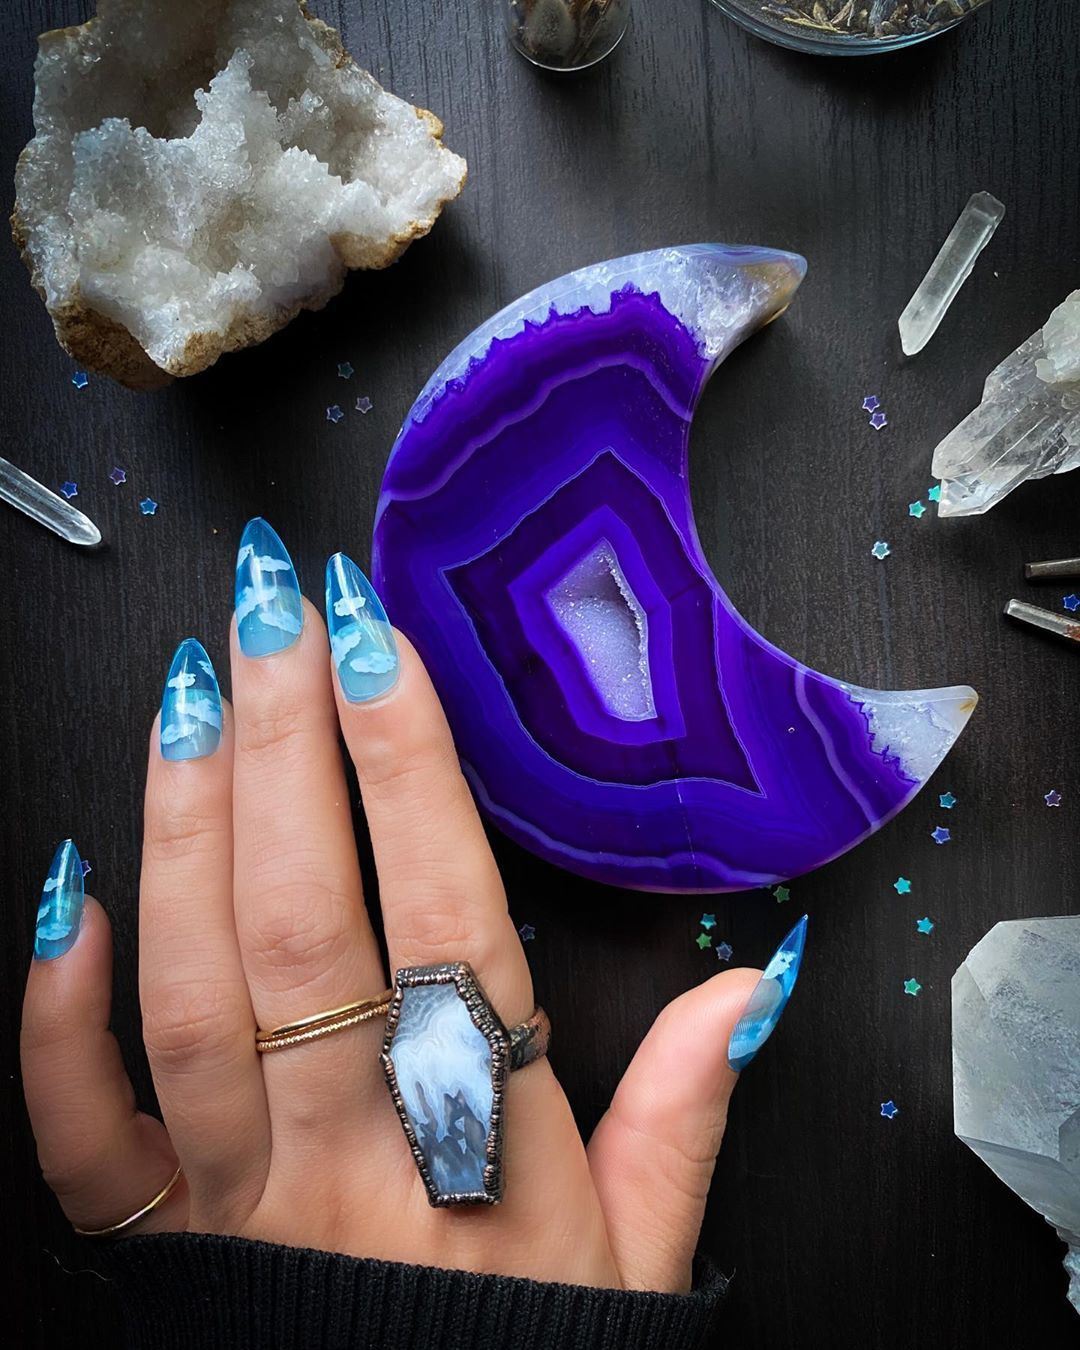 cloud jelly nails in 2020 jelly nails swag nails nails cloud jelly nails in 2020 jelly nails